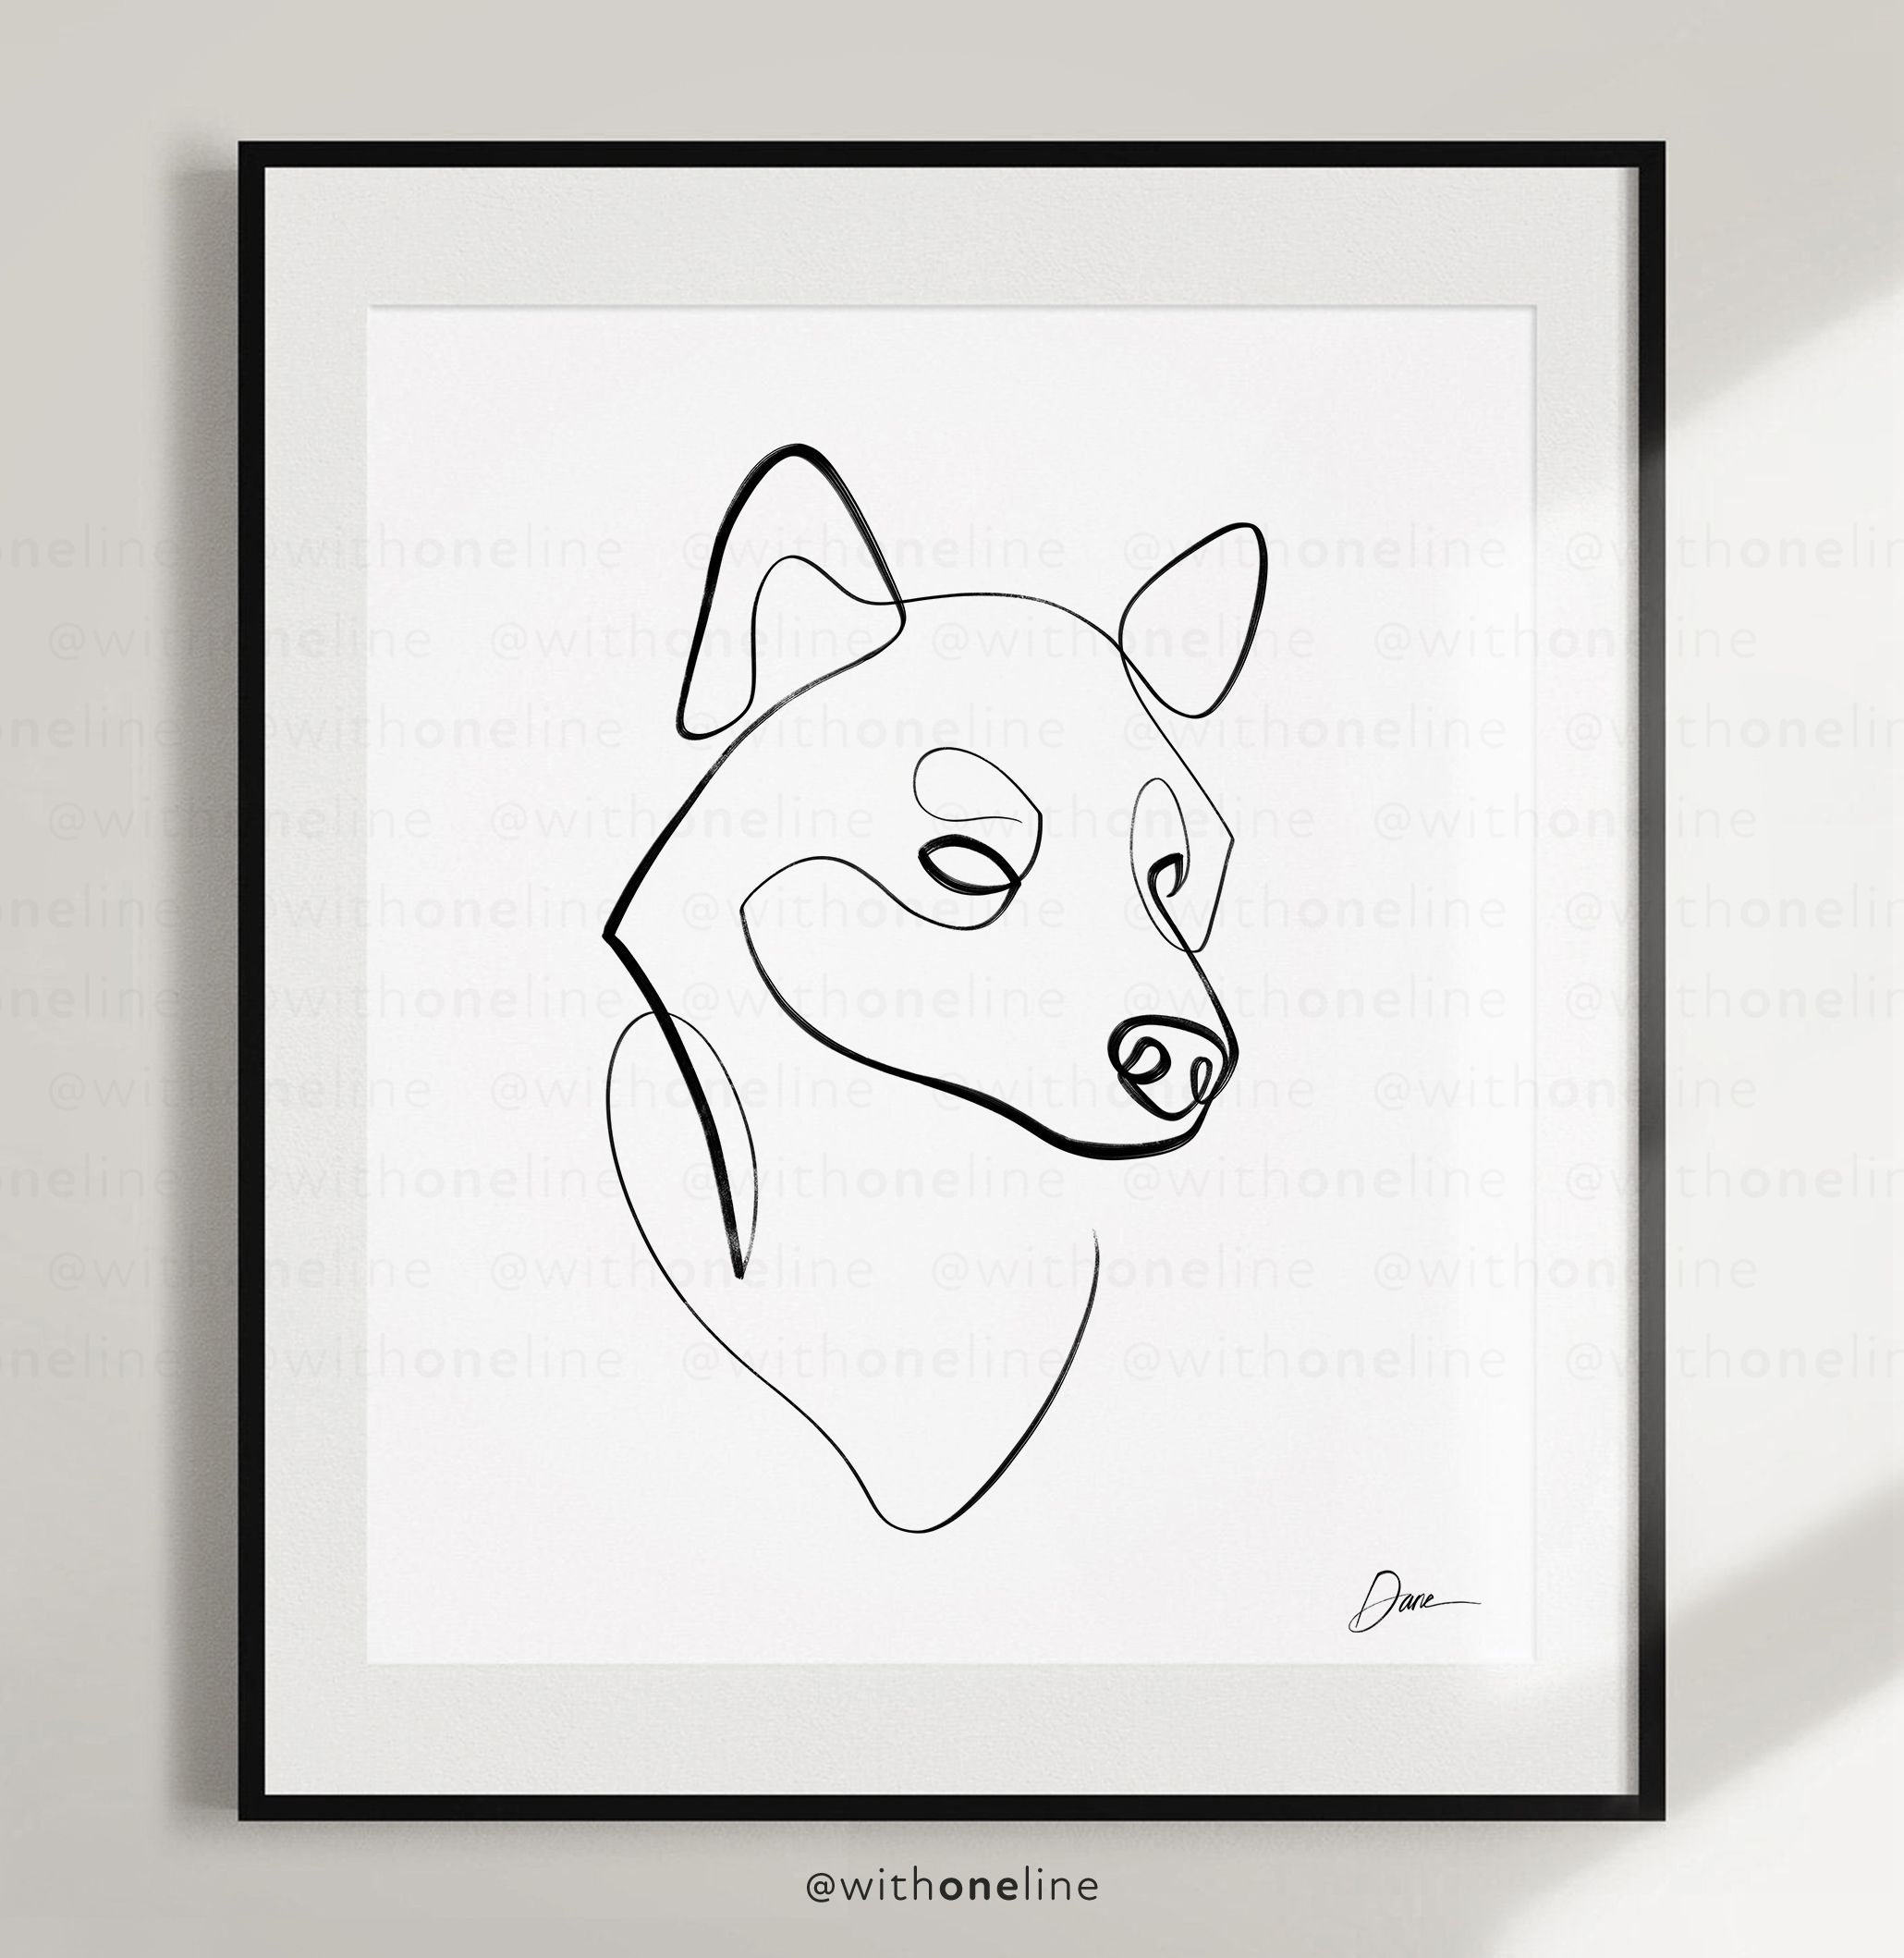 Shiba Inu Art Poster Print Gift By Withoneline Cute Dog Etsy In 2020 Dog Line Drawing Line Art Drawings Posters Art Prints